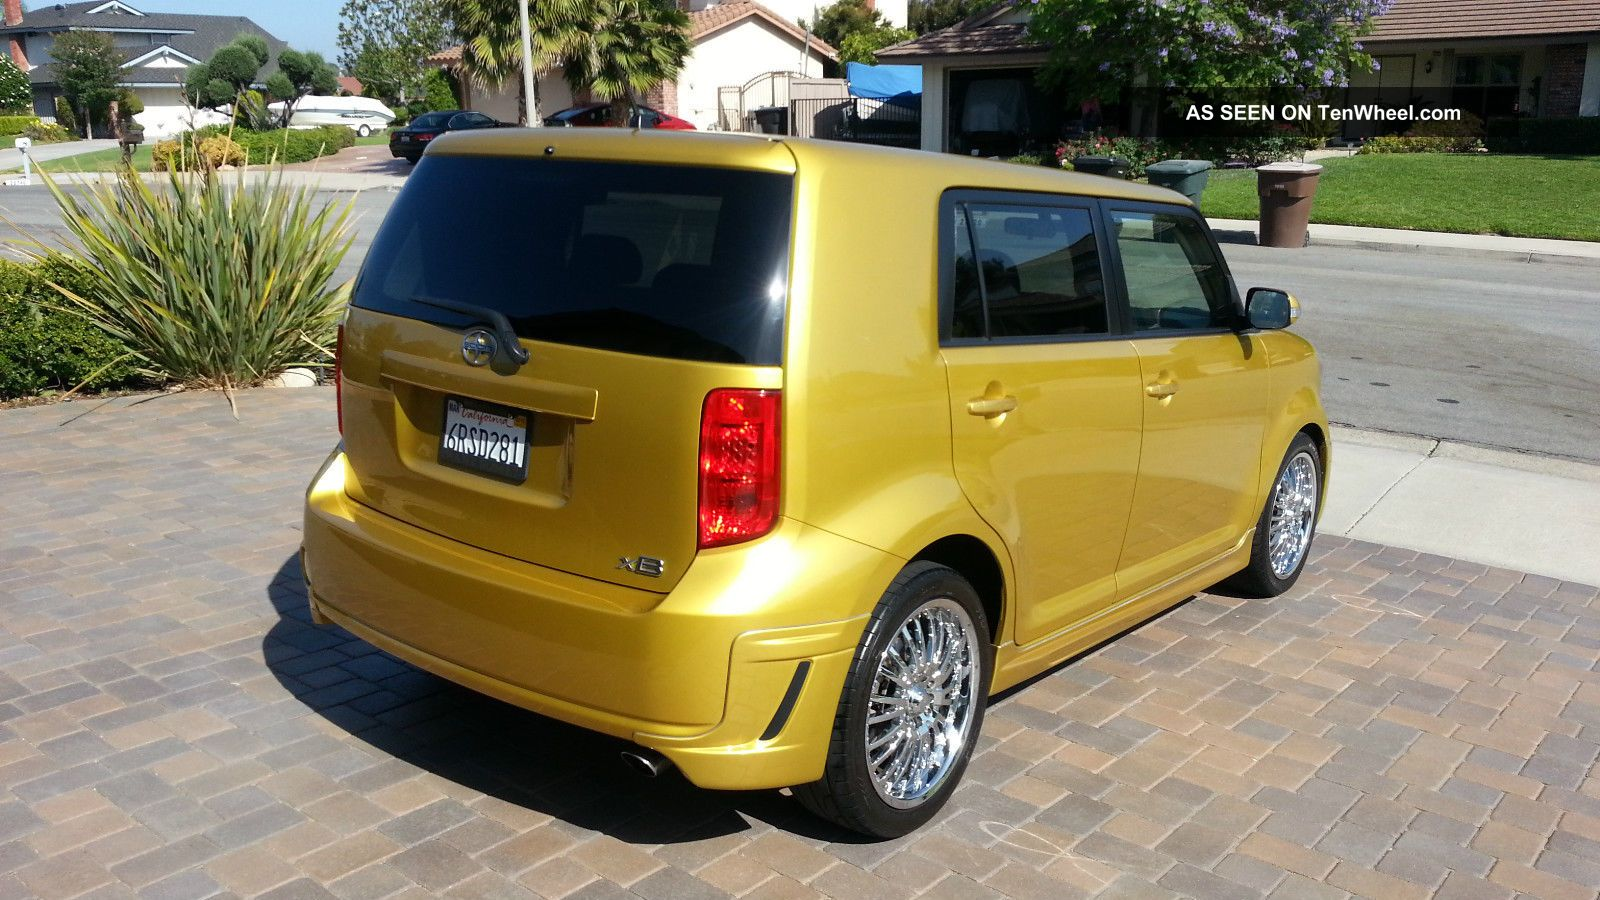 2008 scion xb limited edition in gold color only 2500 units in america. Black Bedroom Furniture Sets. Home Design Ideas